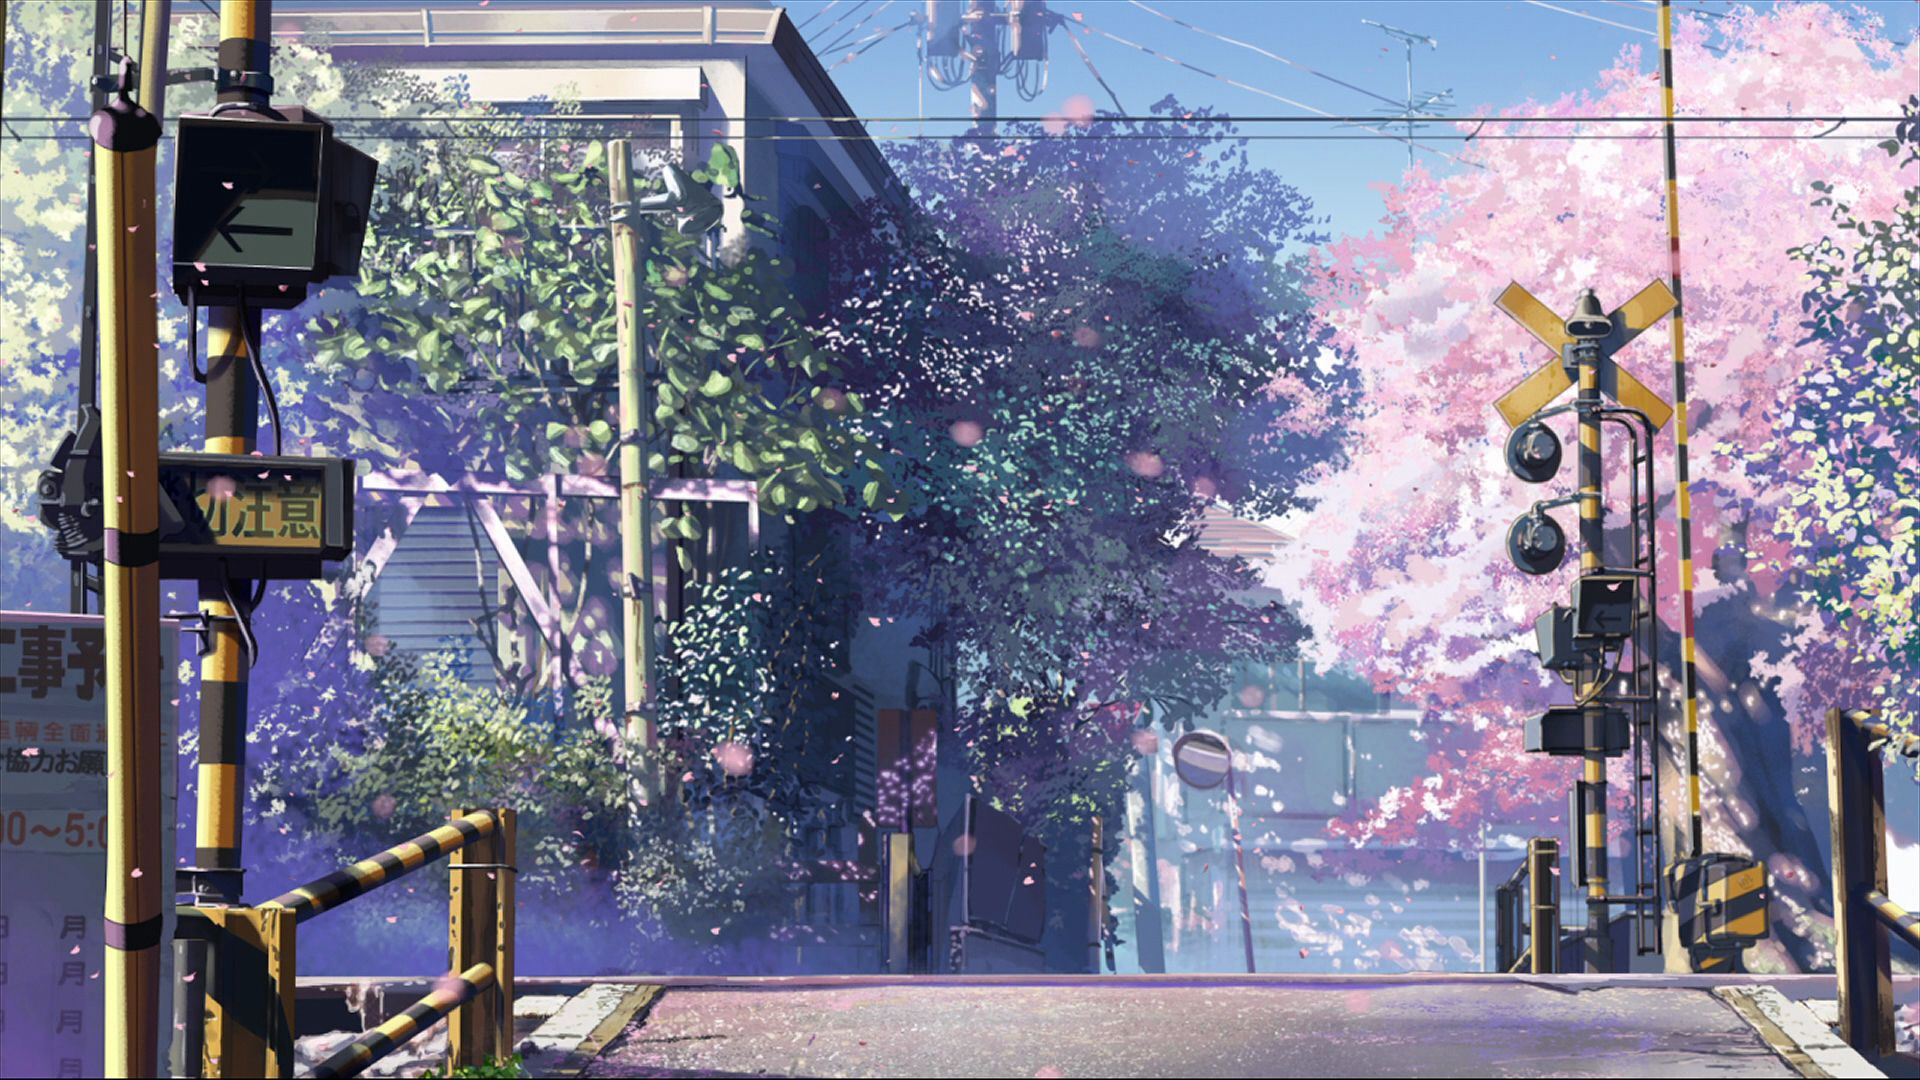 Check Out This Amazing Anime Art Threadless Blog Anime Scenery Wallpaper Anime Scenery Scenery Wallpaper